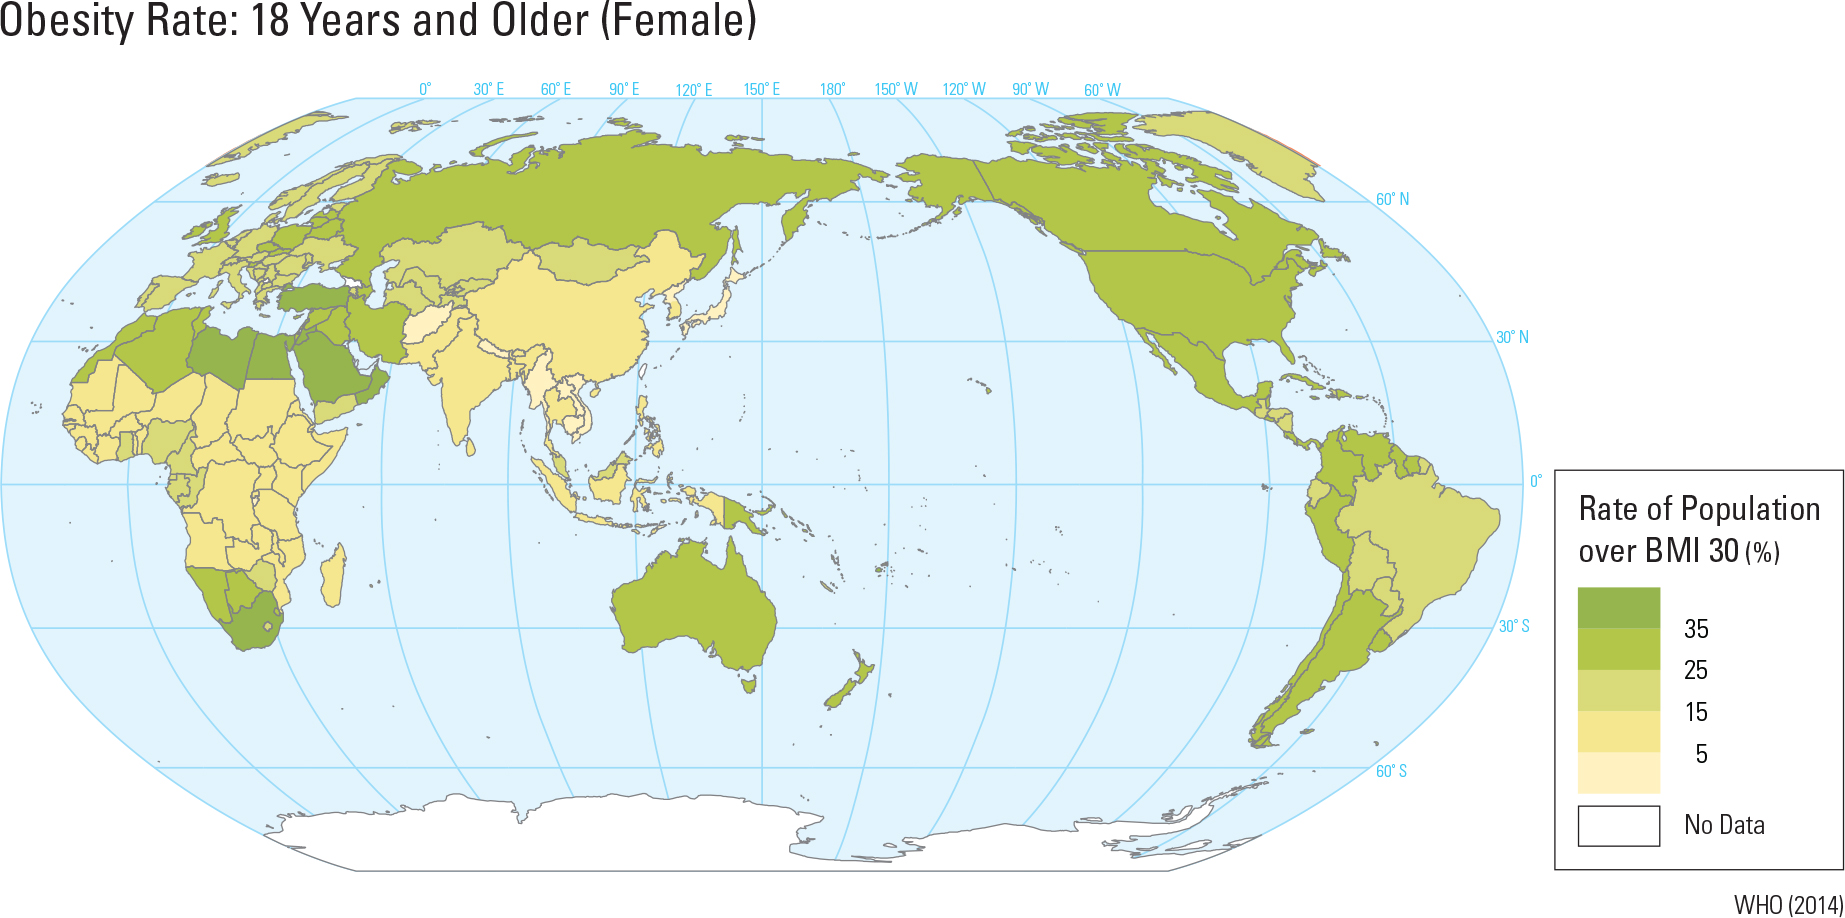 Obesity Rate: 18 Years and Older (Female)